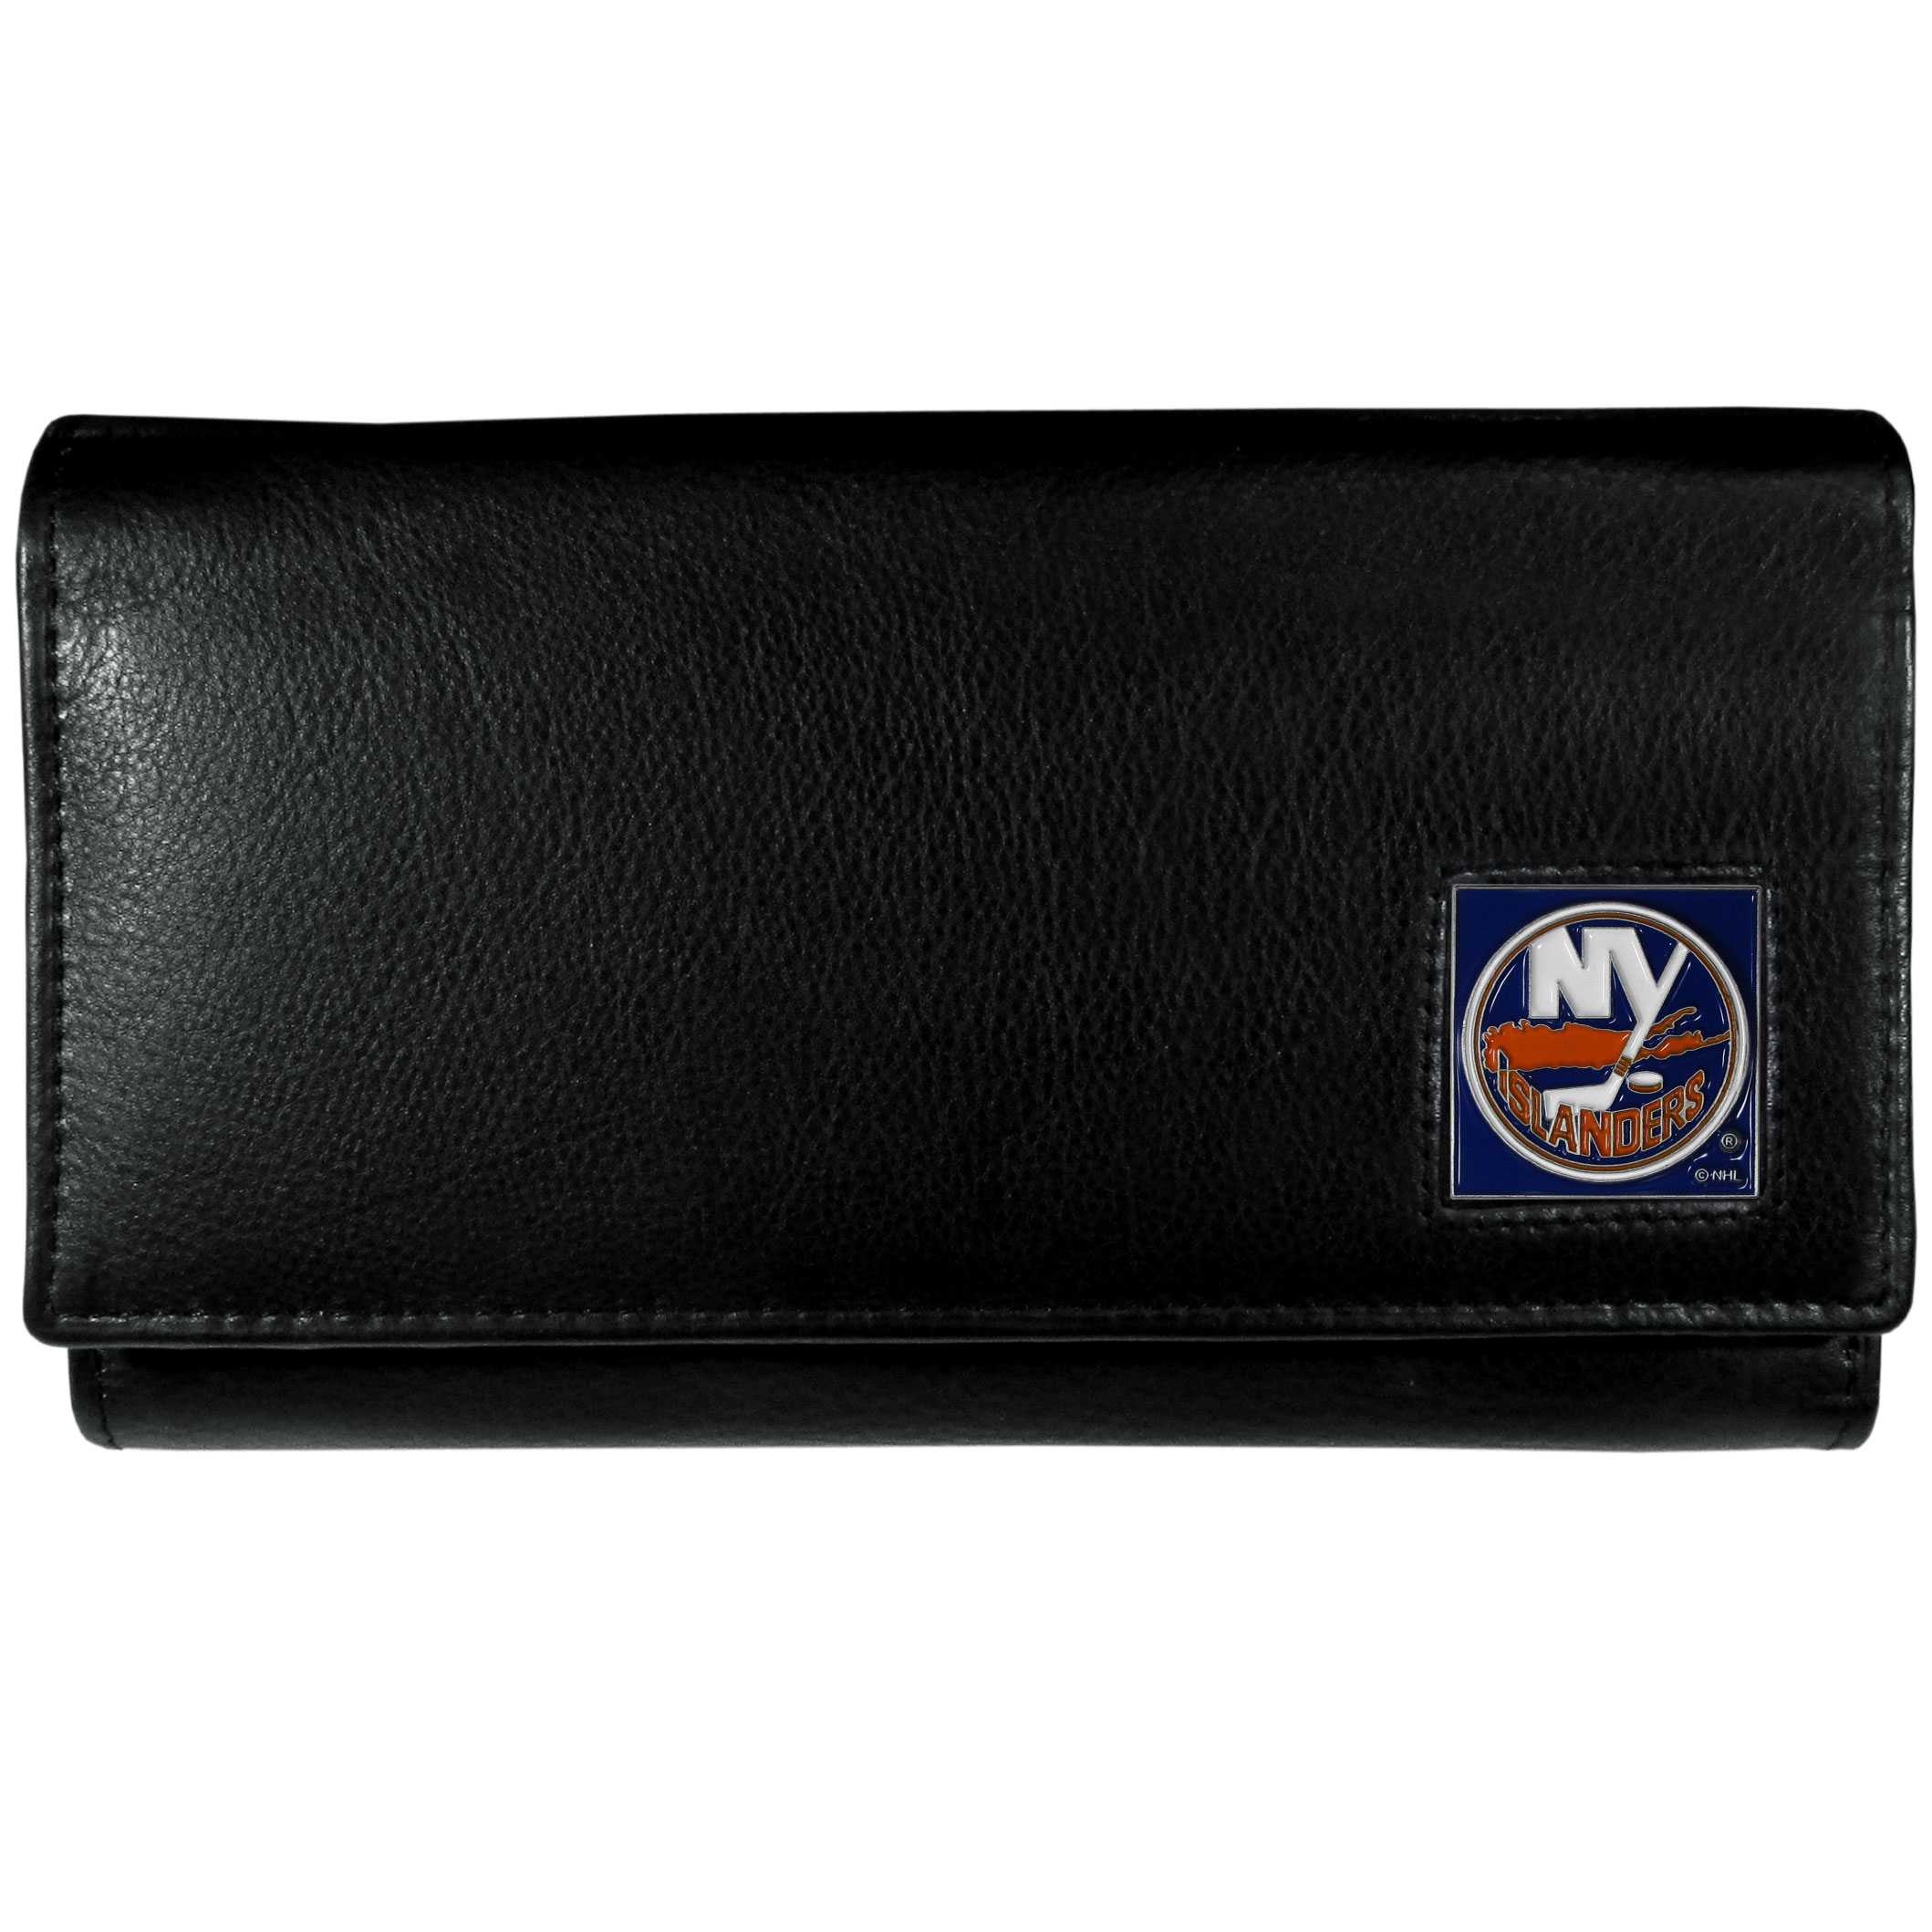 New York Islanders® Leather Women's Wallet - This genuine leather women's pocketbook features 9 credit card slots, a windowed ID slot, spacious front pocket, inner pocket and zippered coin pocket. The front of the pocketbook has a hand painted metal square with the New York Islanders® primary logo.